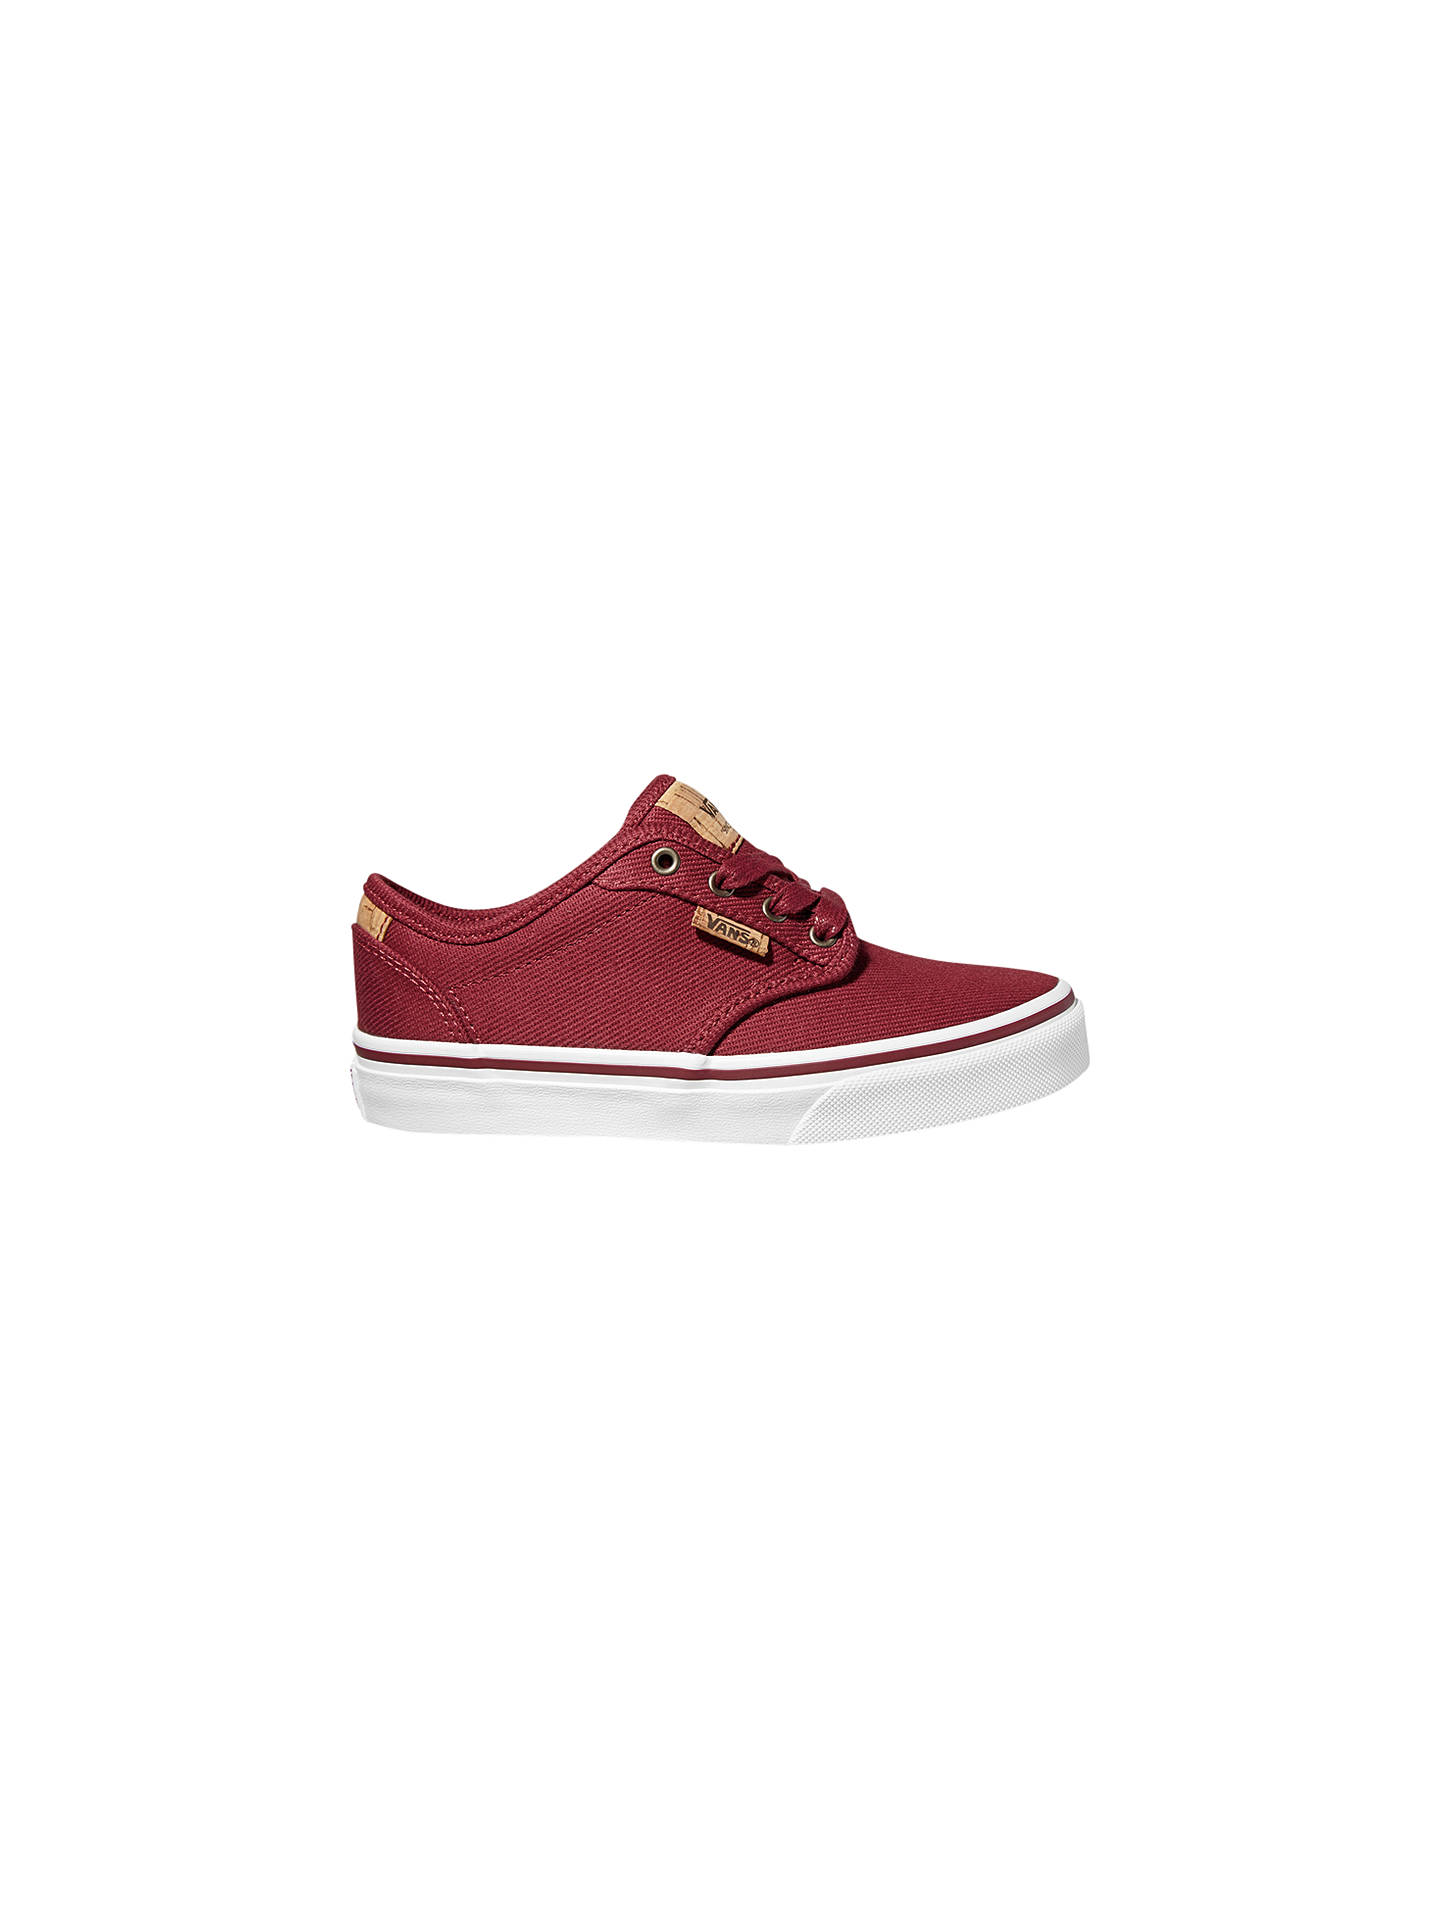 sale uk factory price better Vans Children's Atwood Deluxe Washed Twill Lace-Up Shoes at ...